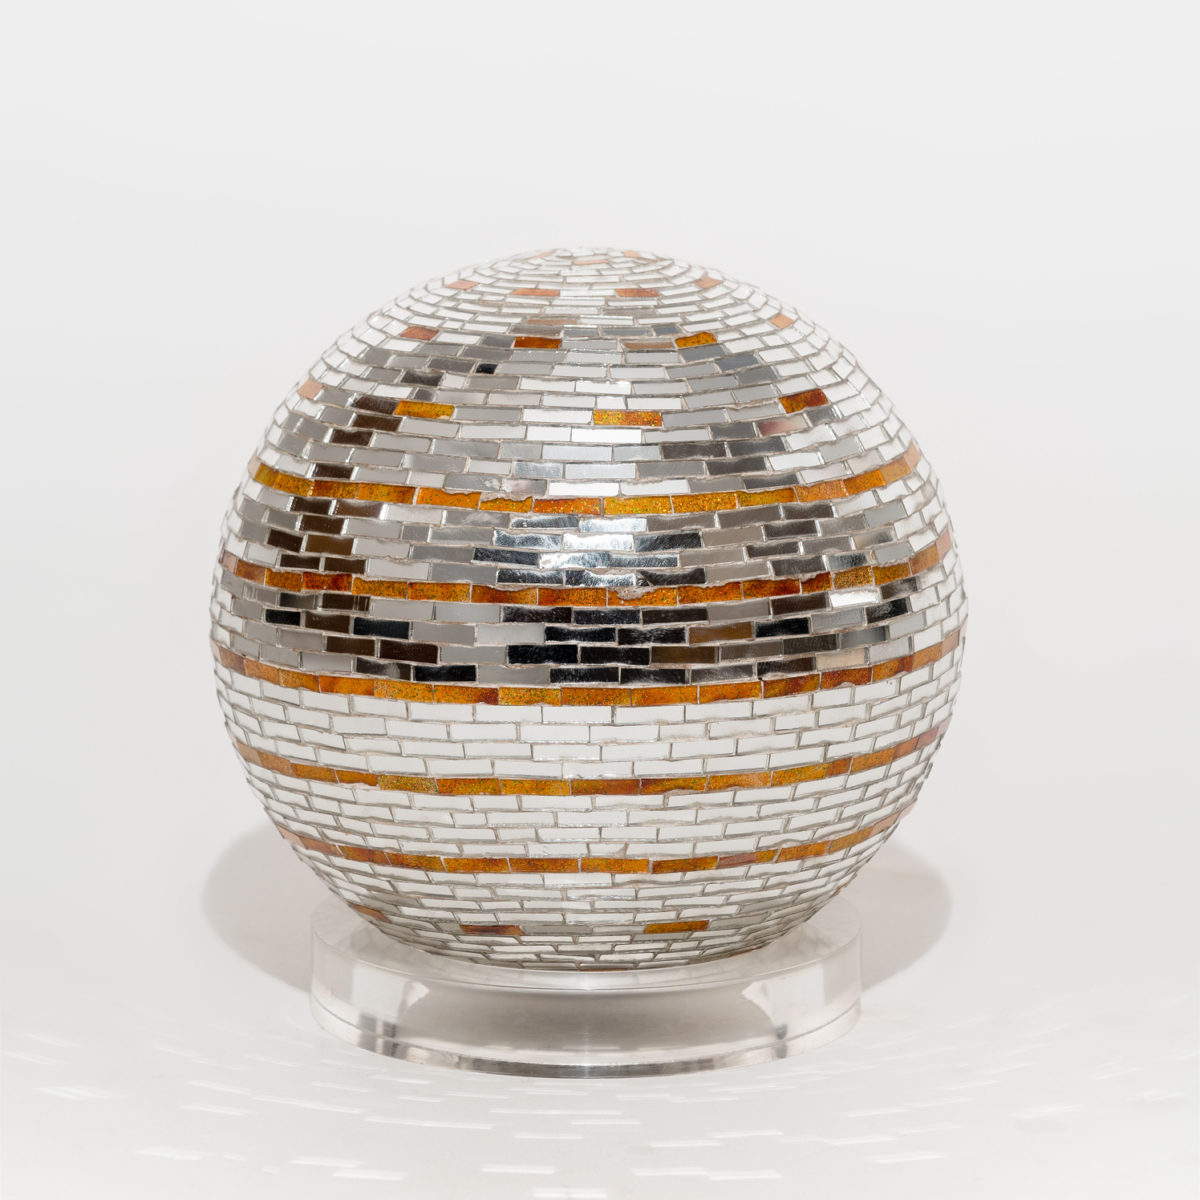 'Mirrored sphere' by Monir Farmanfarmaian.